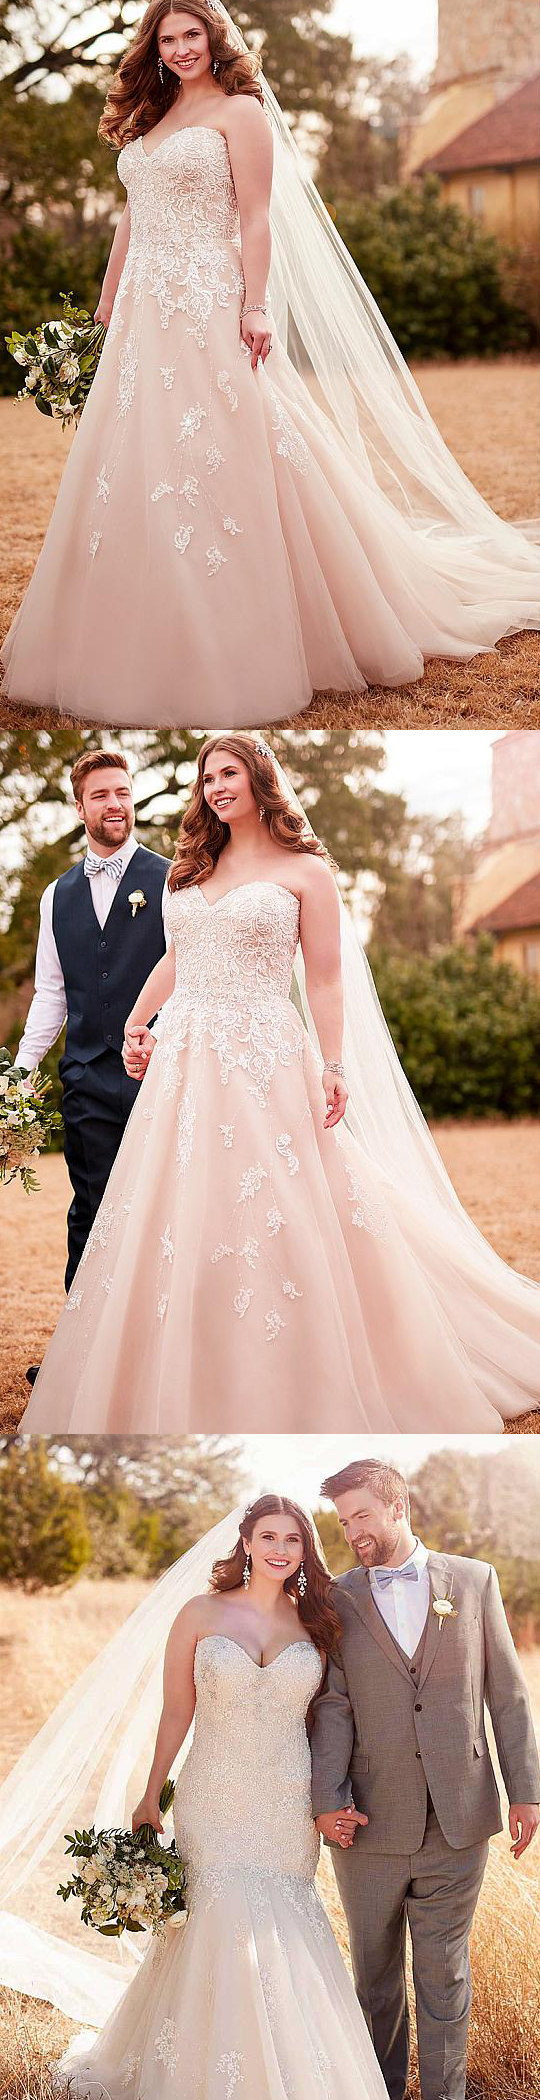 Awesome & Unique Plus Size Ivory Wedding Dresses for curvy / curves ...